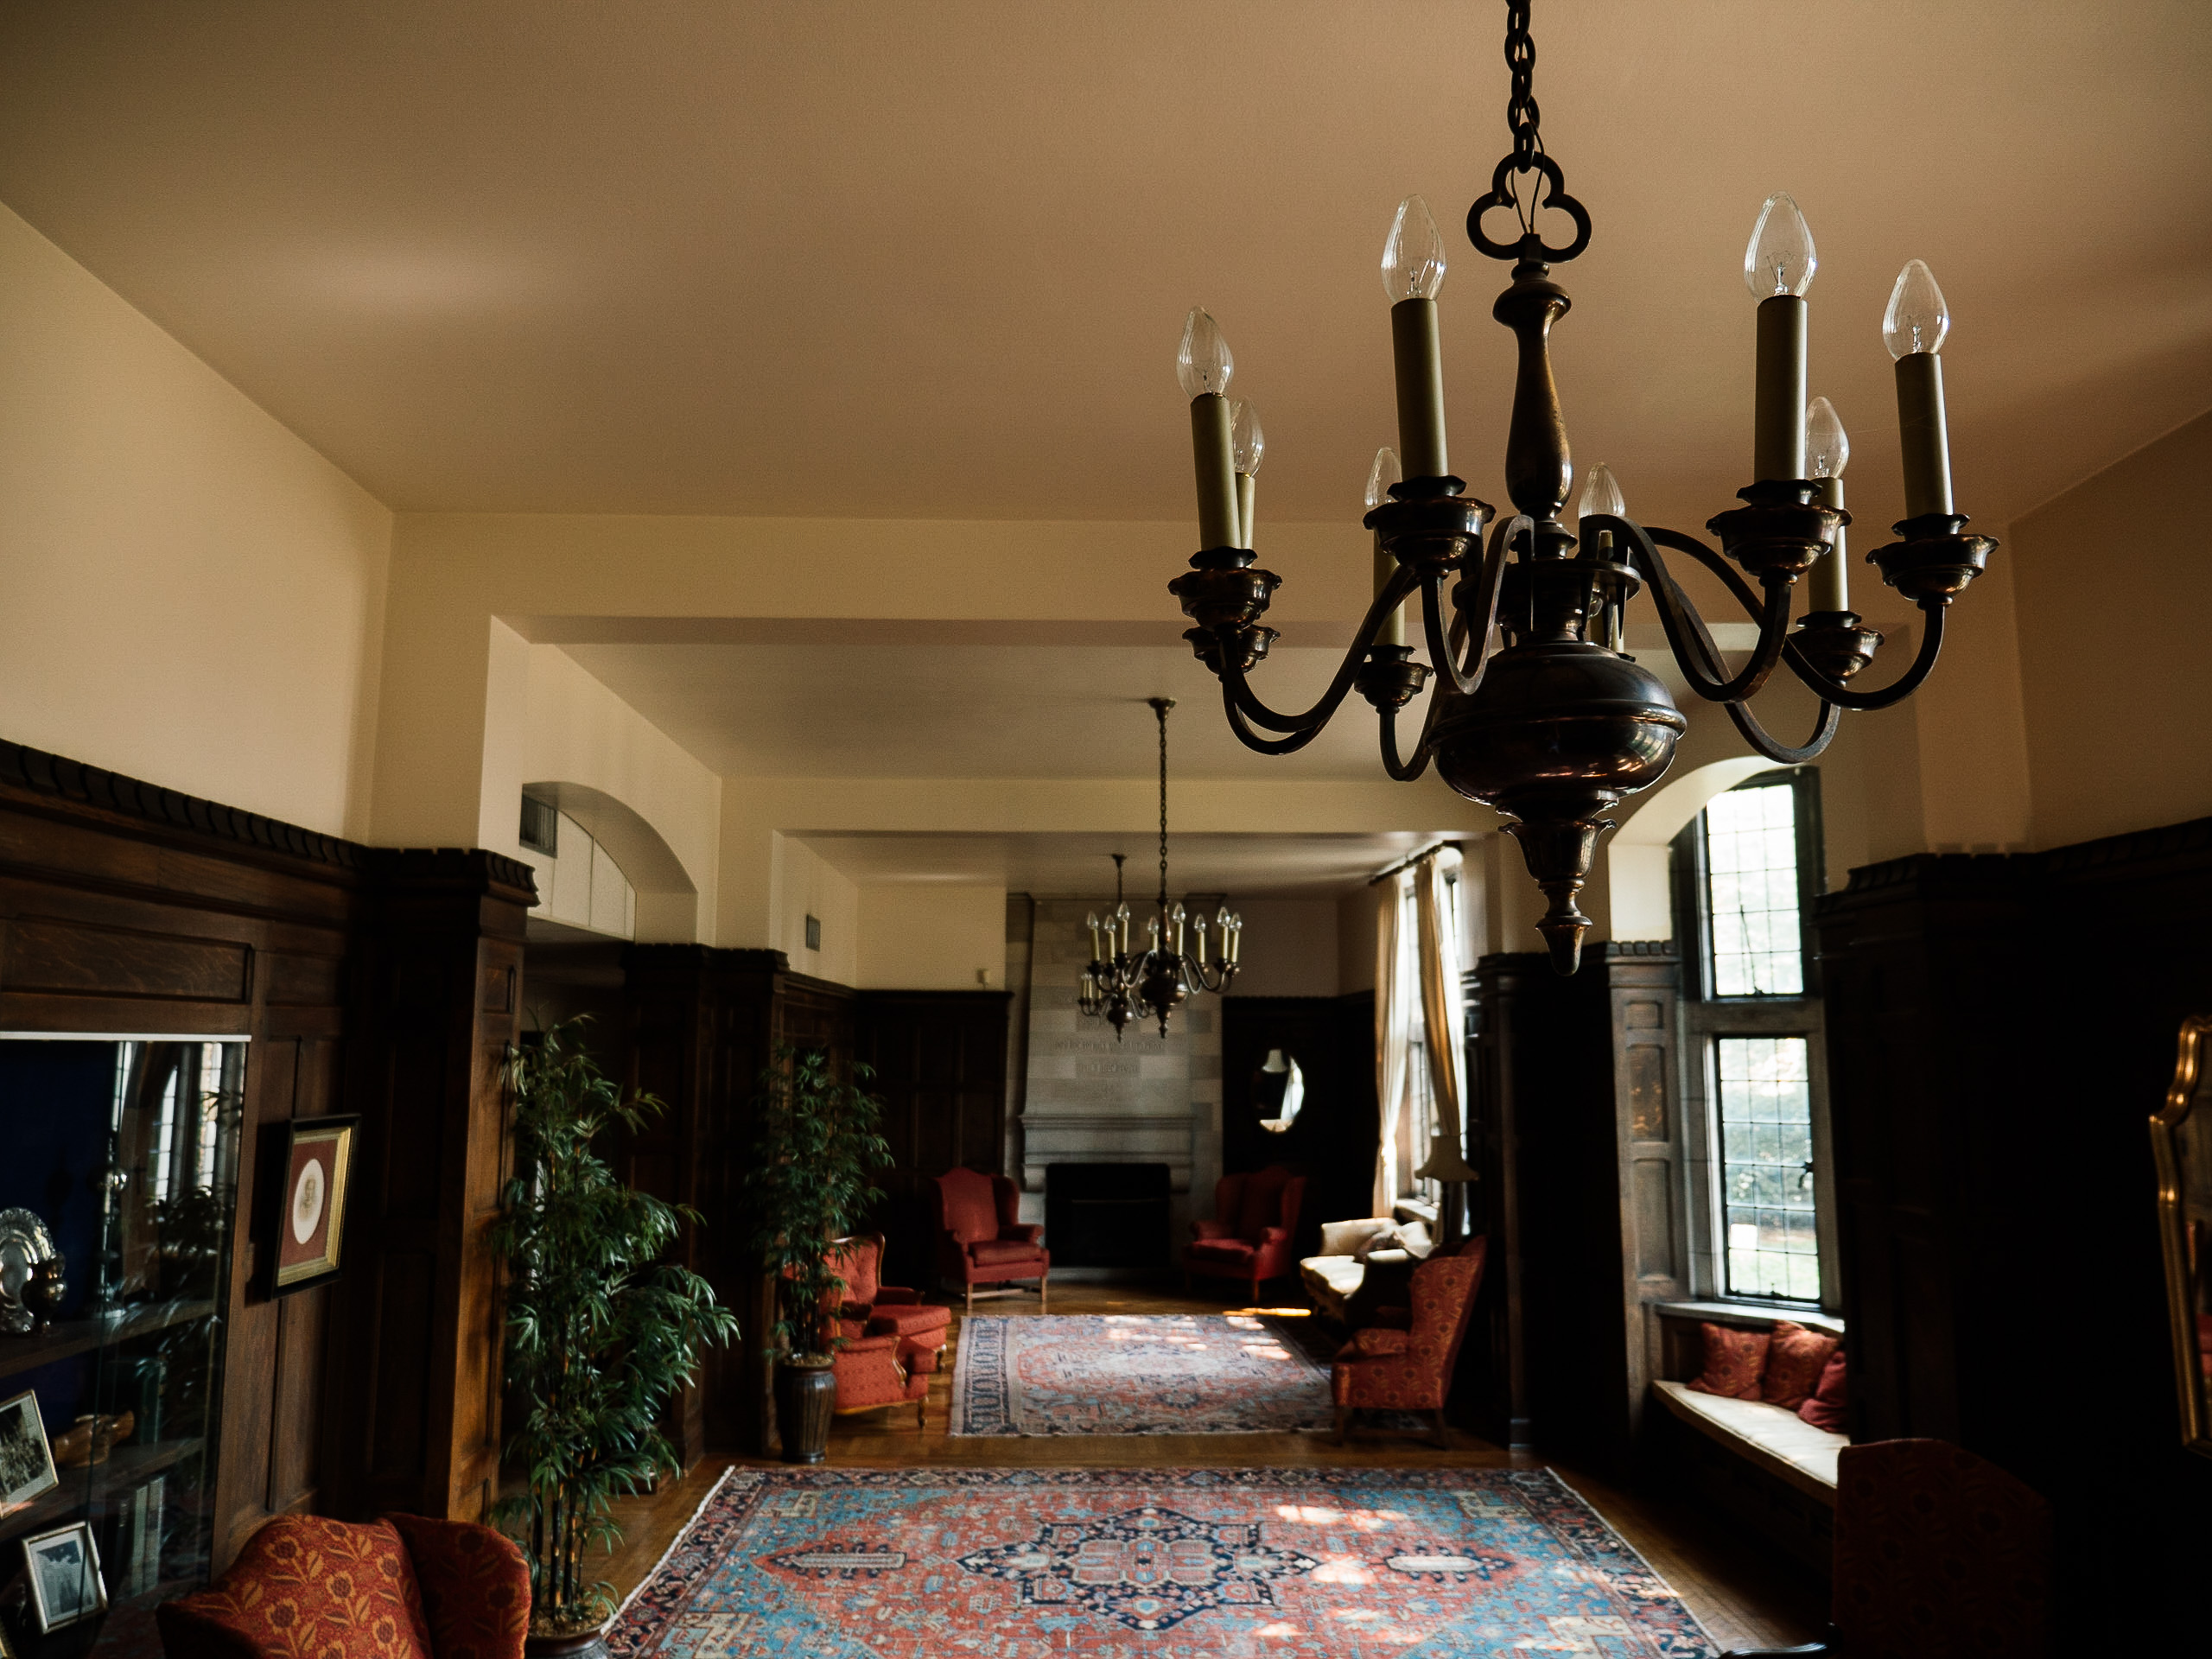 long view of historical room with chandelier